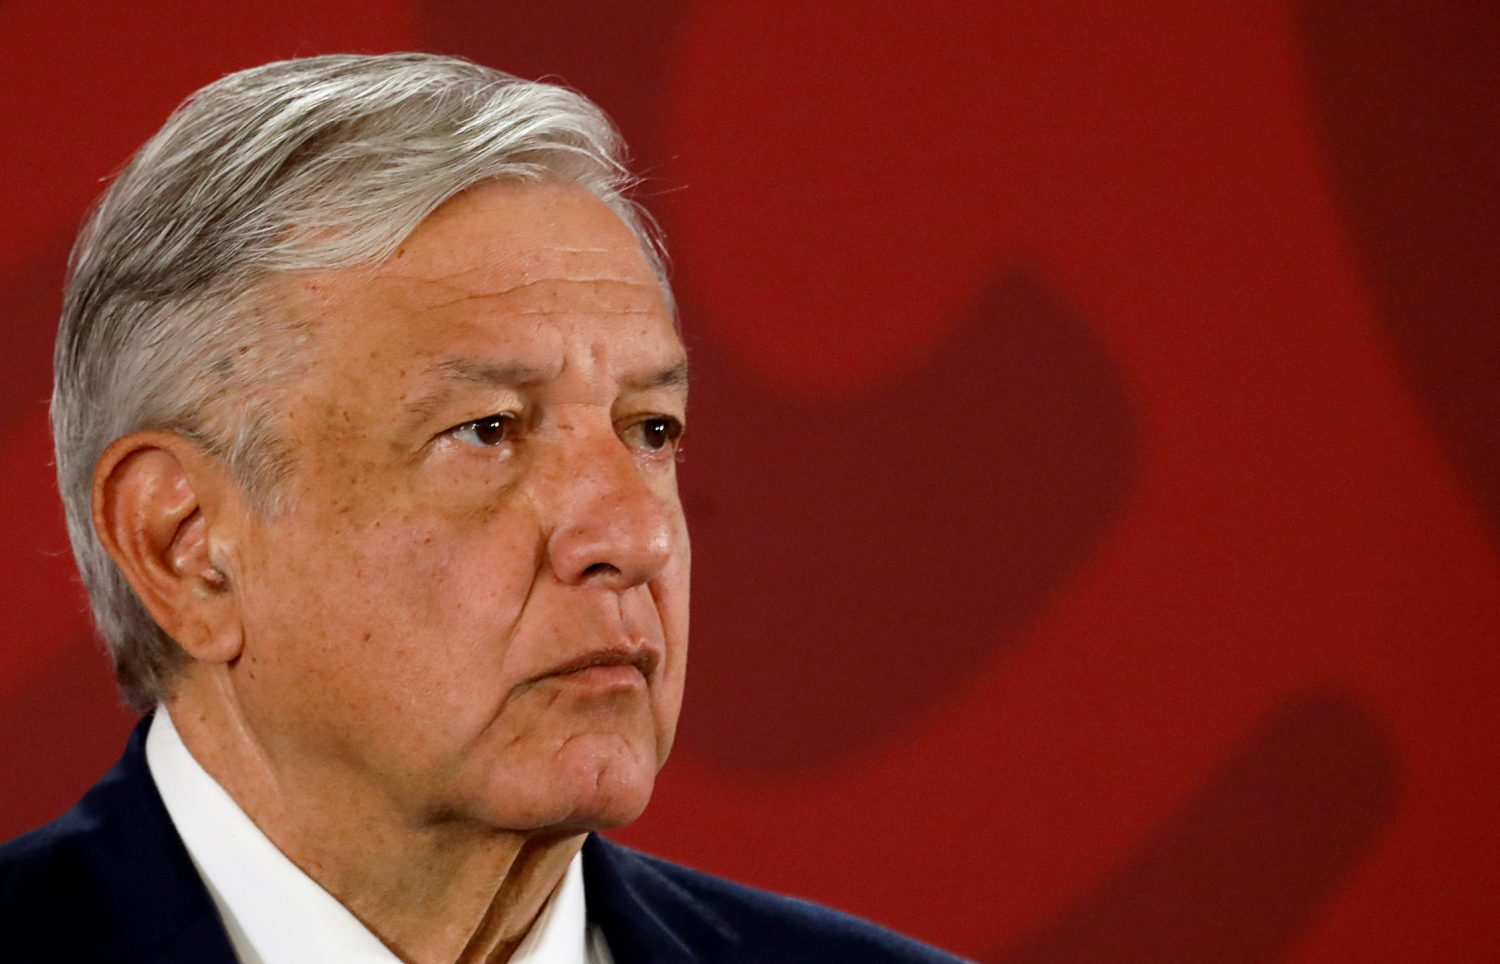 FILE PHOTO: Mexico's President Andres Manuel Lopez Obrador attends a news conference at the National Palace in Mexico City, Mexico July 22, 2019. REUTERS/Edgard Garrido/File Photo